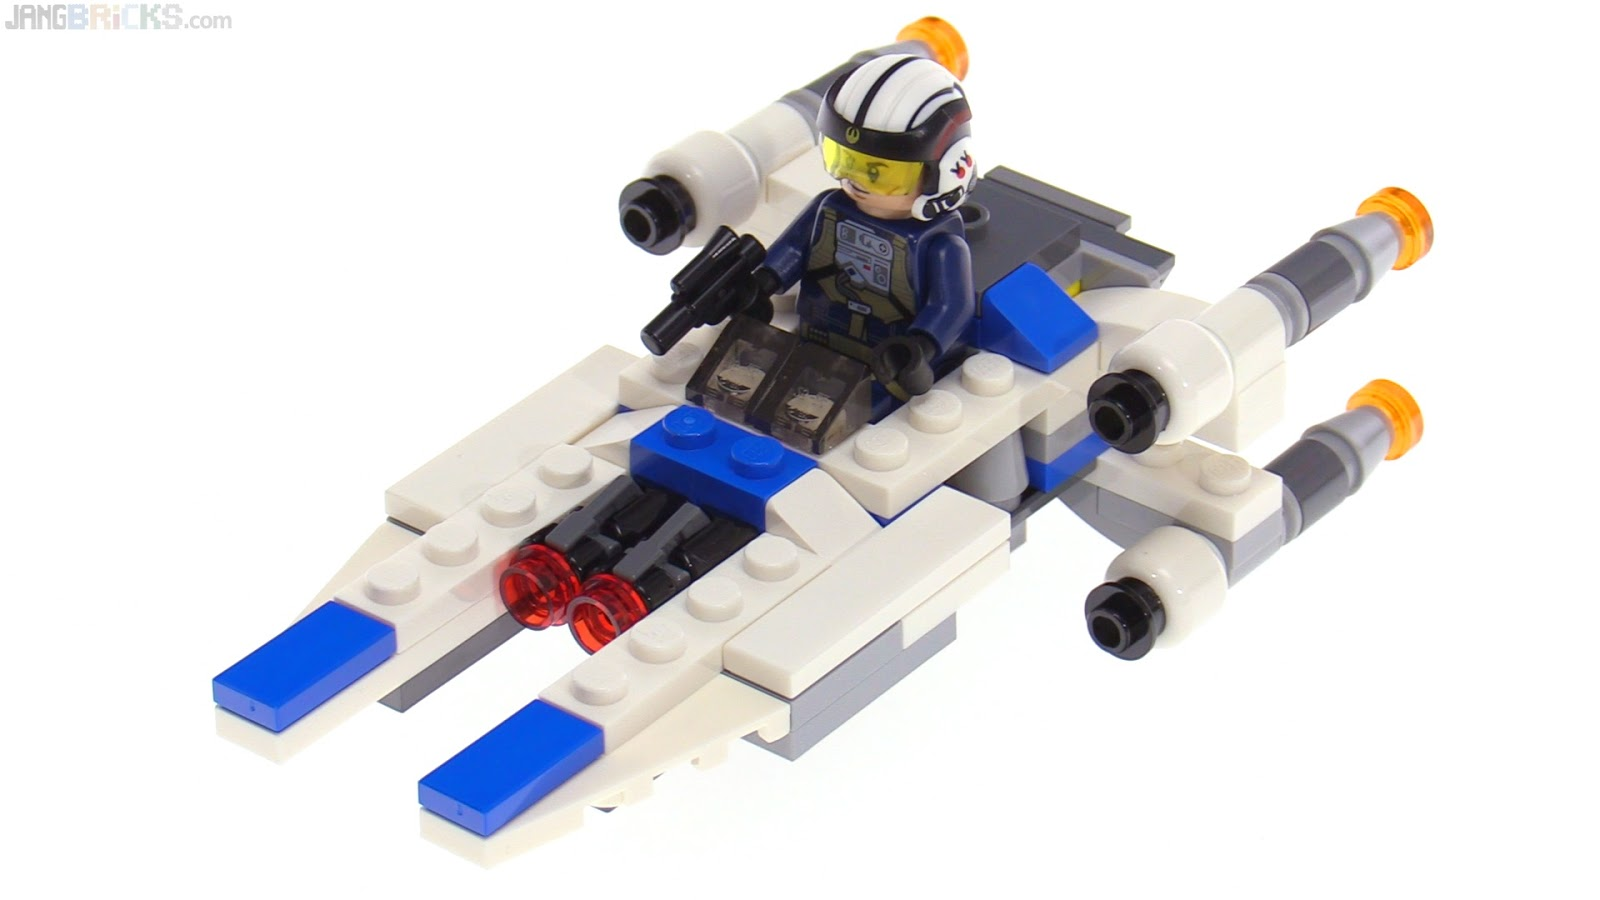 LEGO Star Wars mini U-Wings: Polybag & Microfighters versions